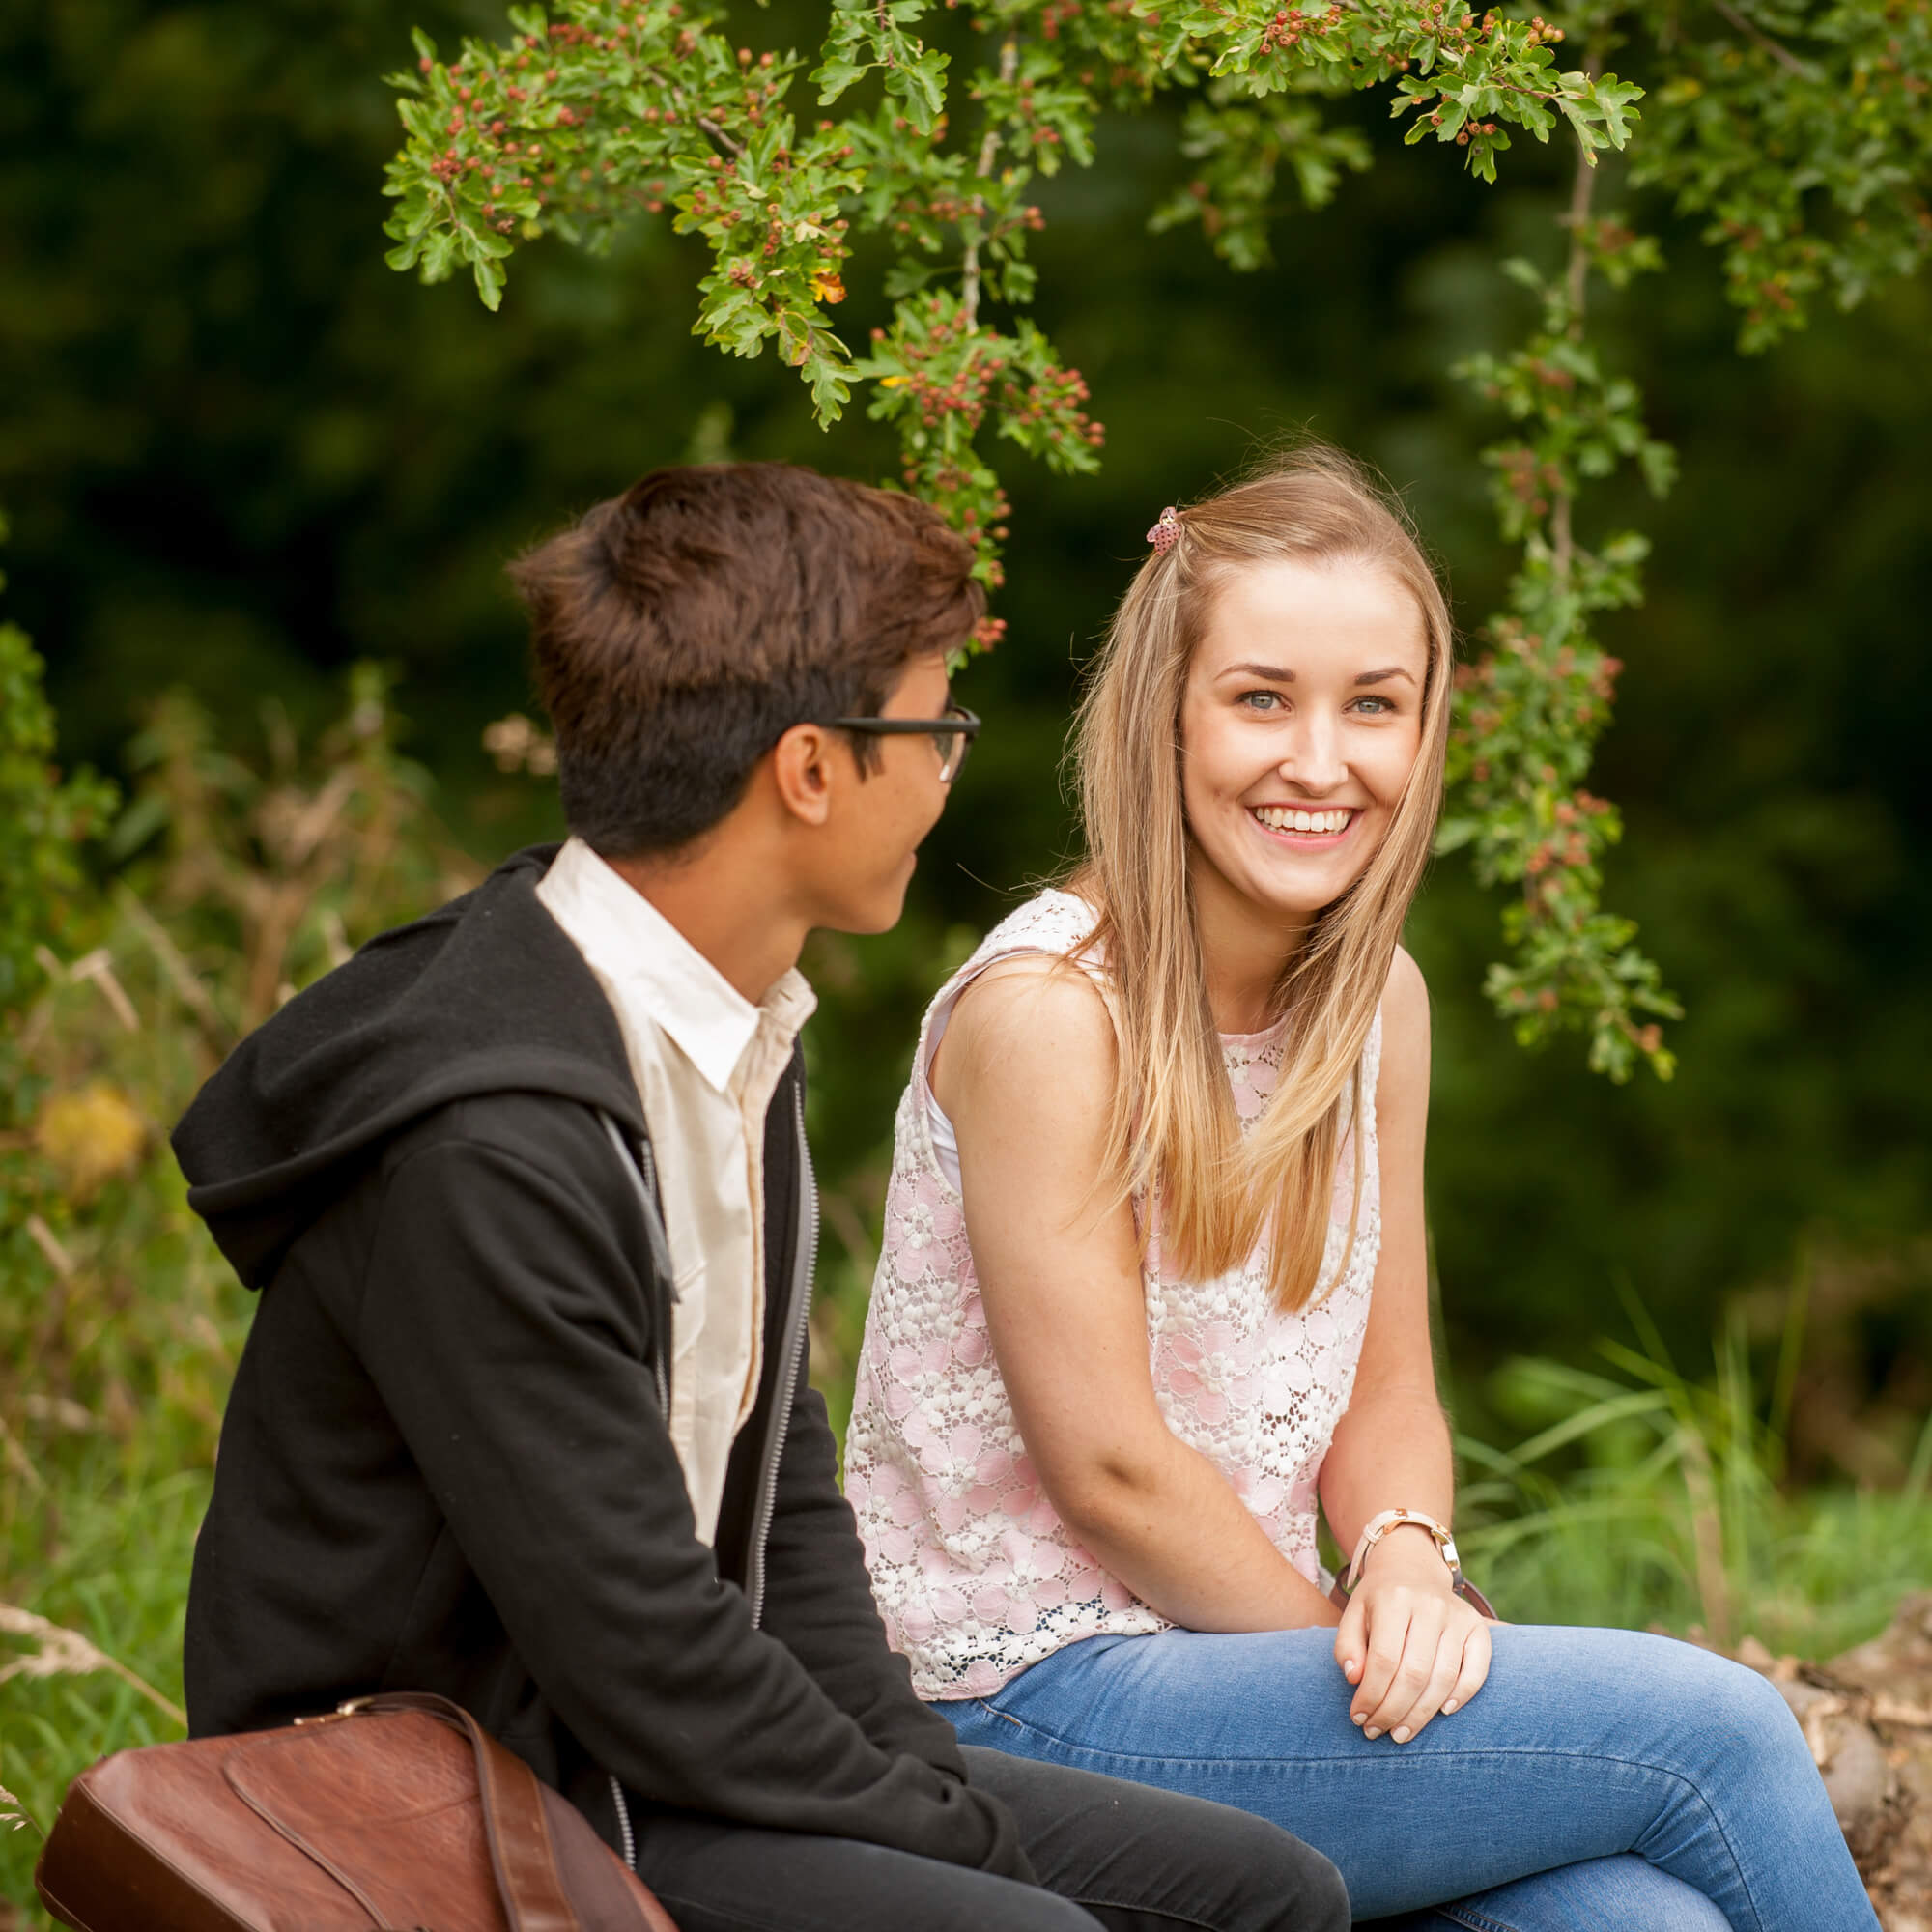 Boy and girl sitting in the park on a bench talking